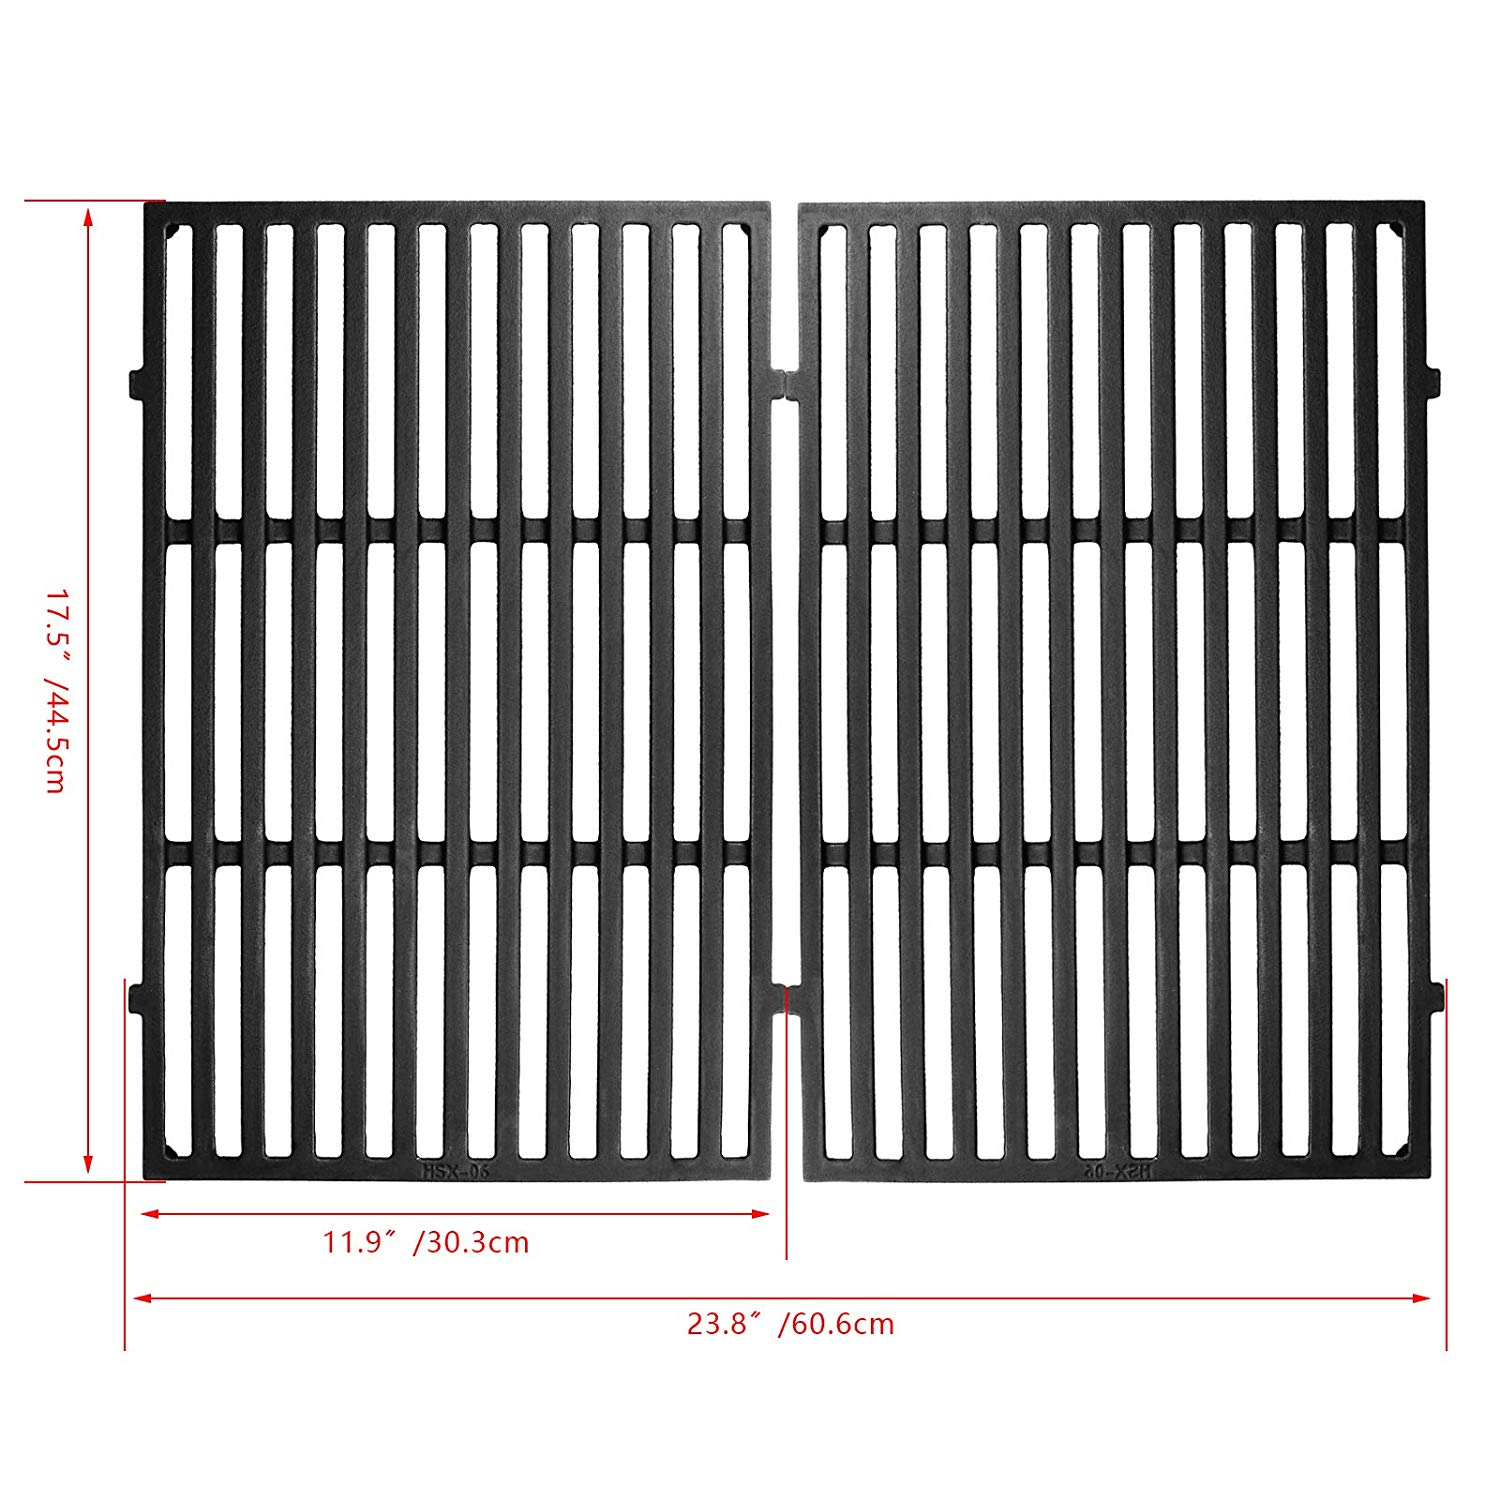 Hisencn 7638 17.5 Inches Cooking Grates for Weber Spirit 300 Series, Spirit 700, Genesis Silver Gold